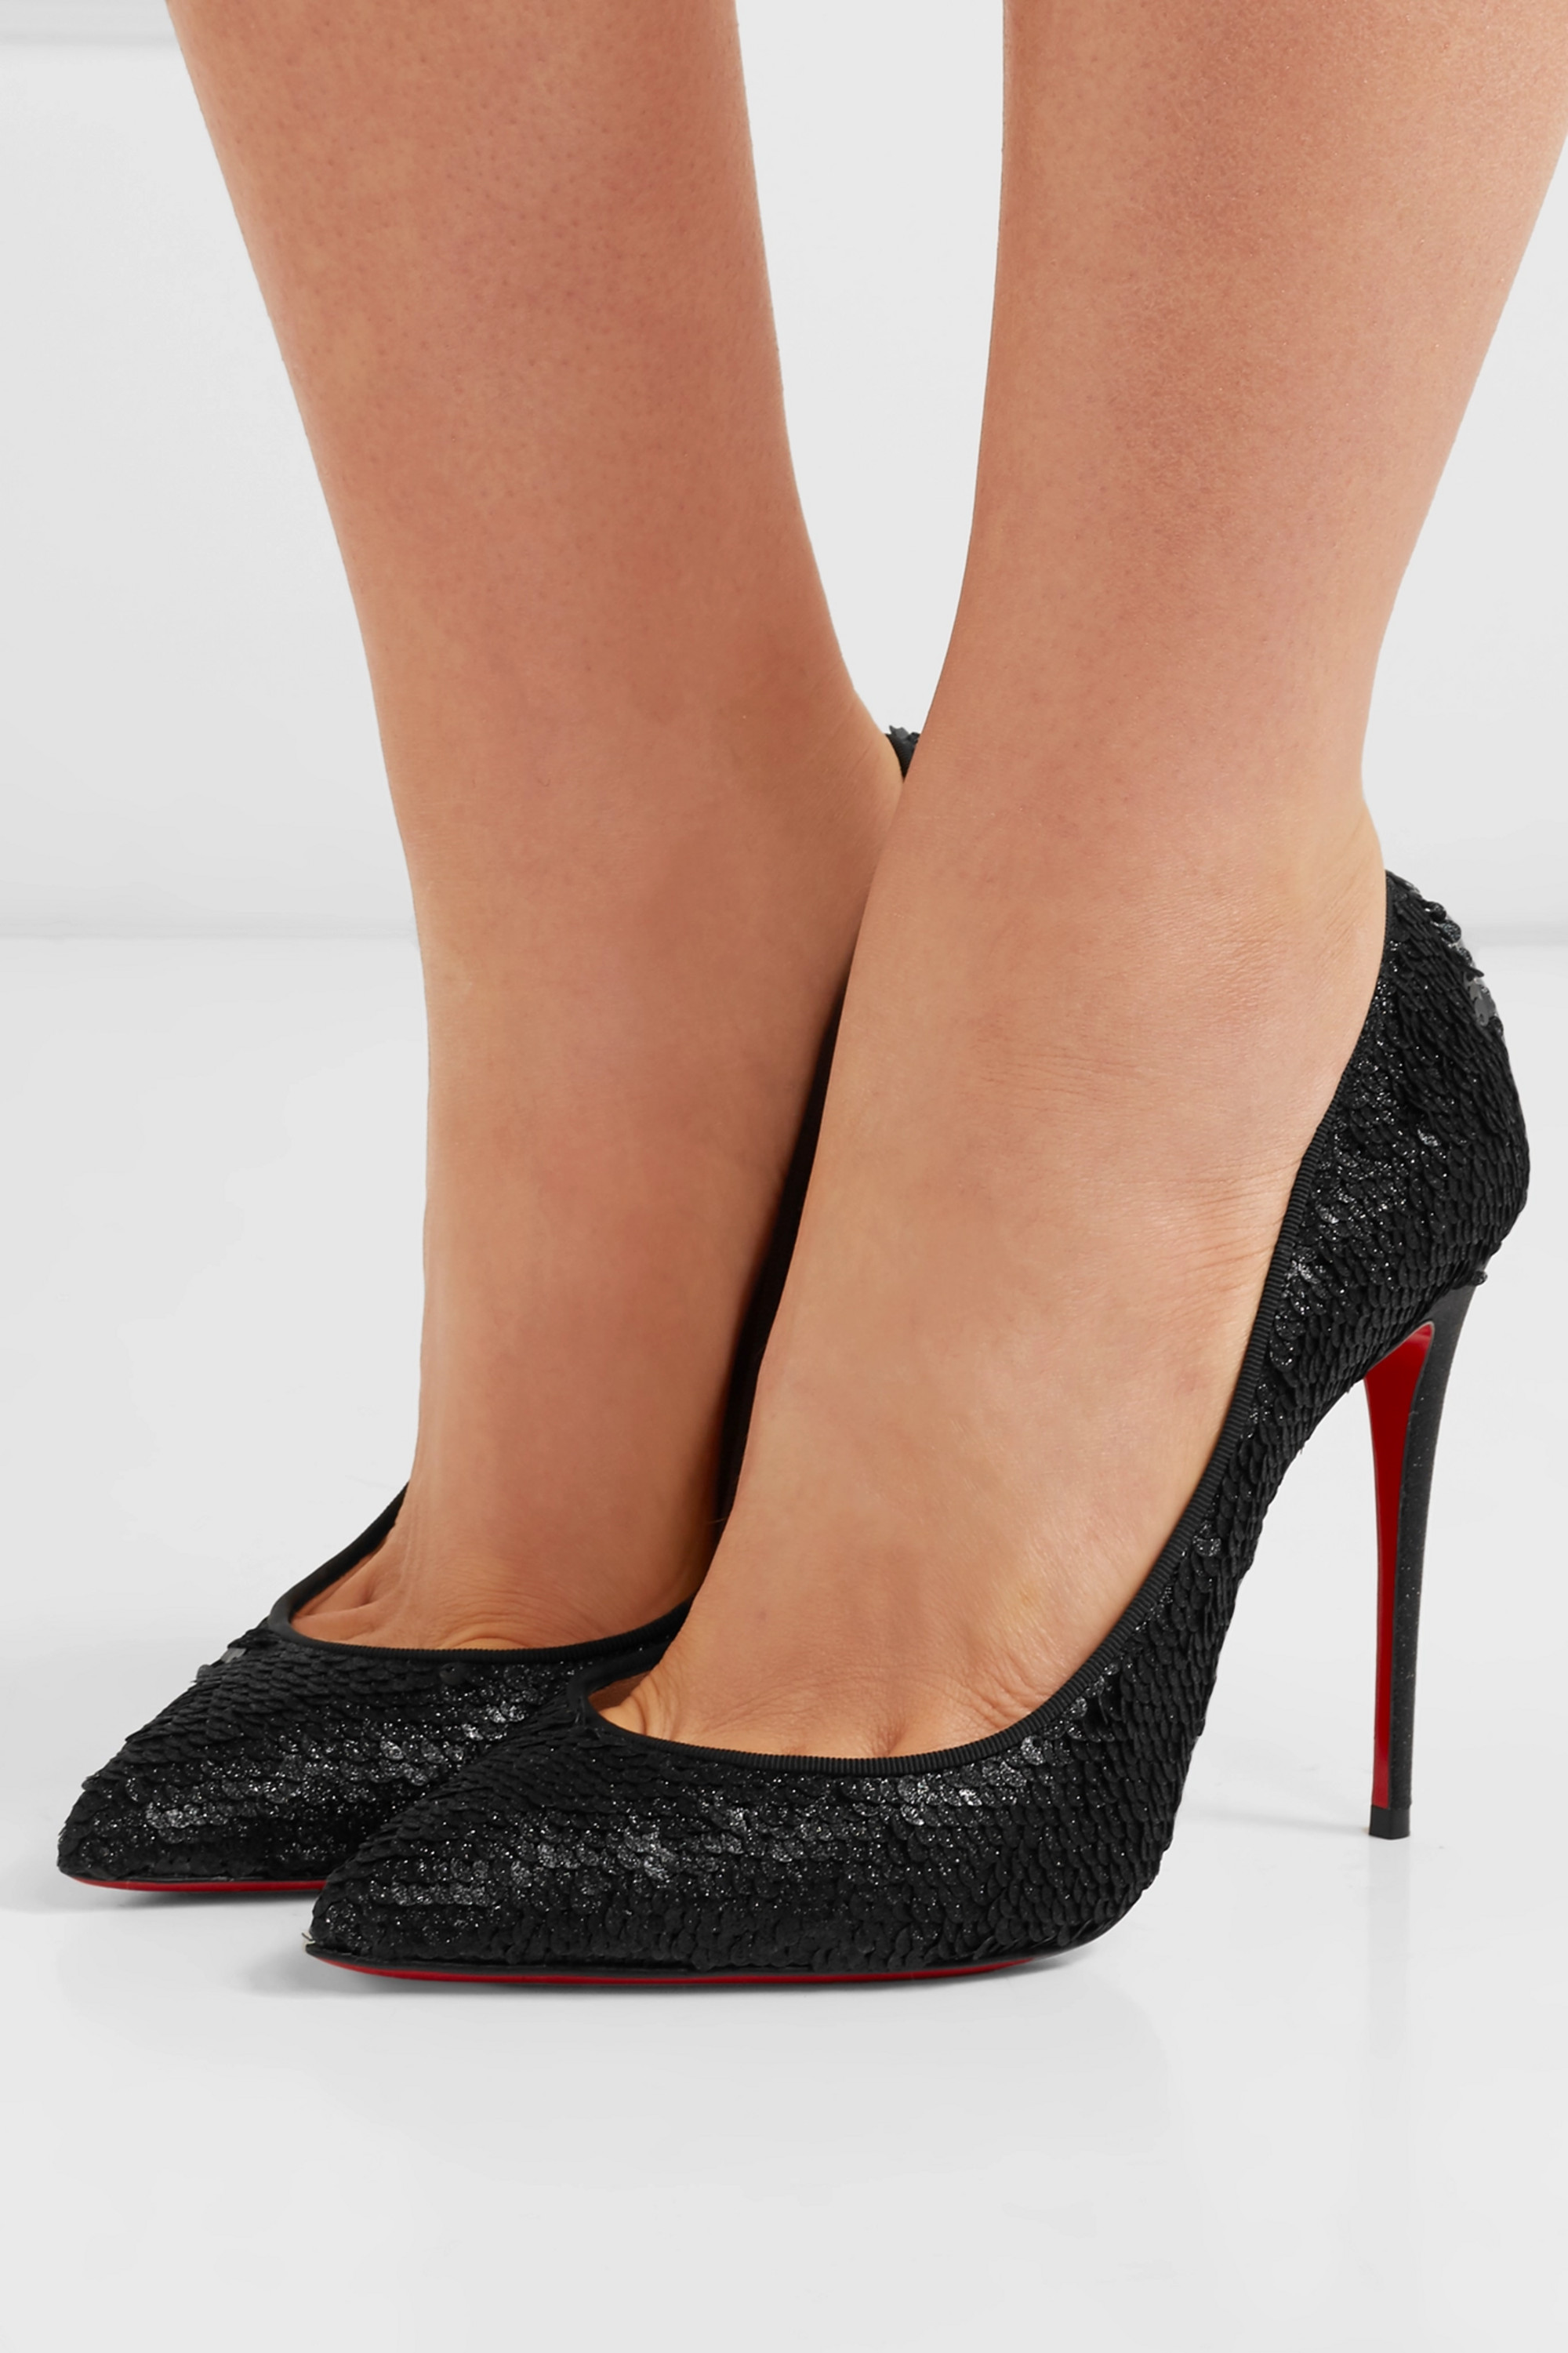 Christian Louboutin Pigalle Follies 100 sequined leather pumps